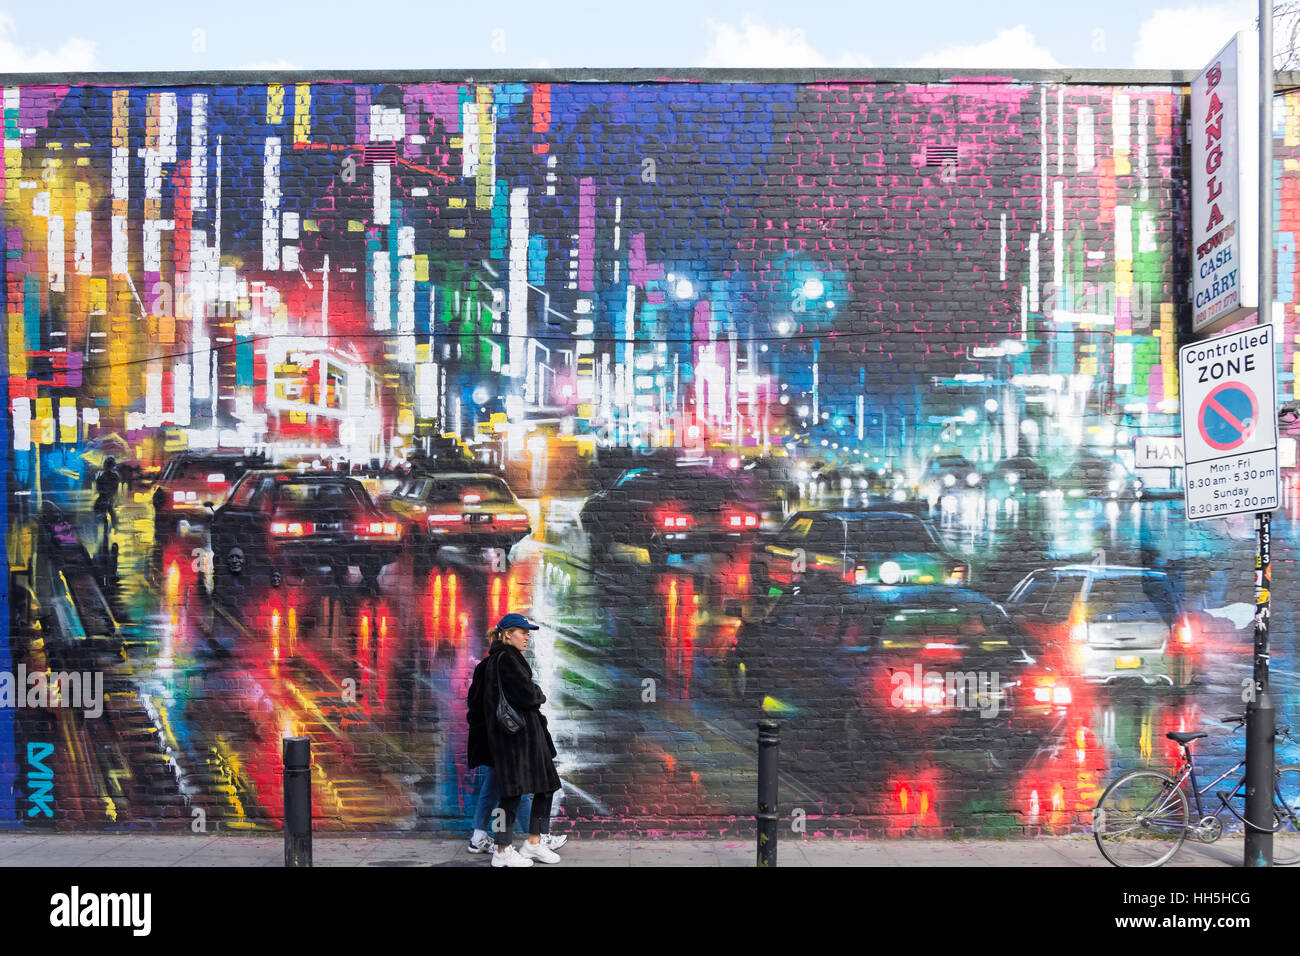 100 london wall murals wall mural in hanbury street london wall murals wall mural in hanbury street spitalfields london borough of